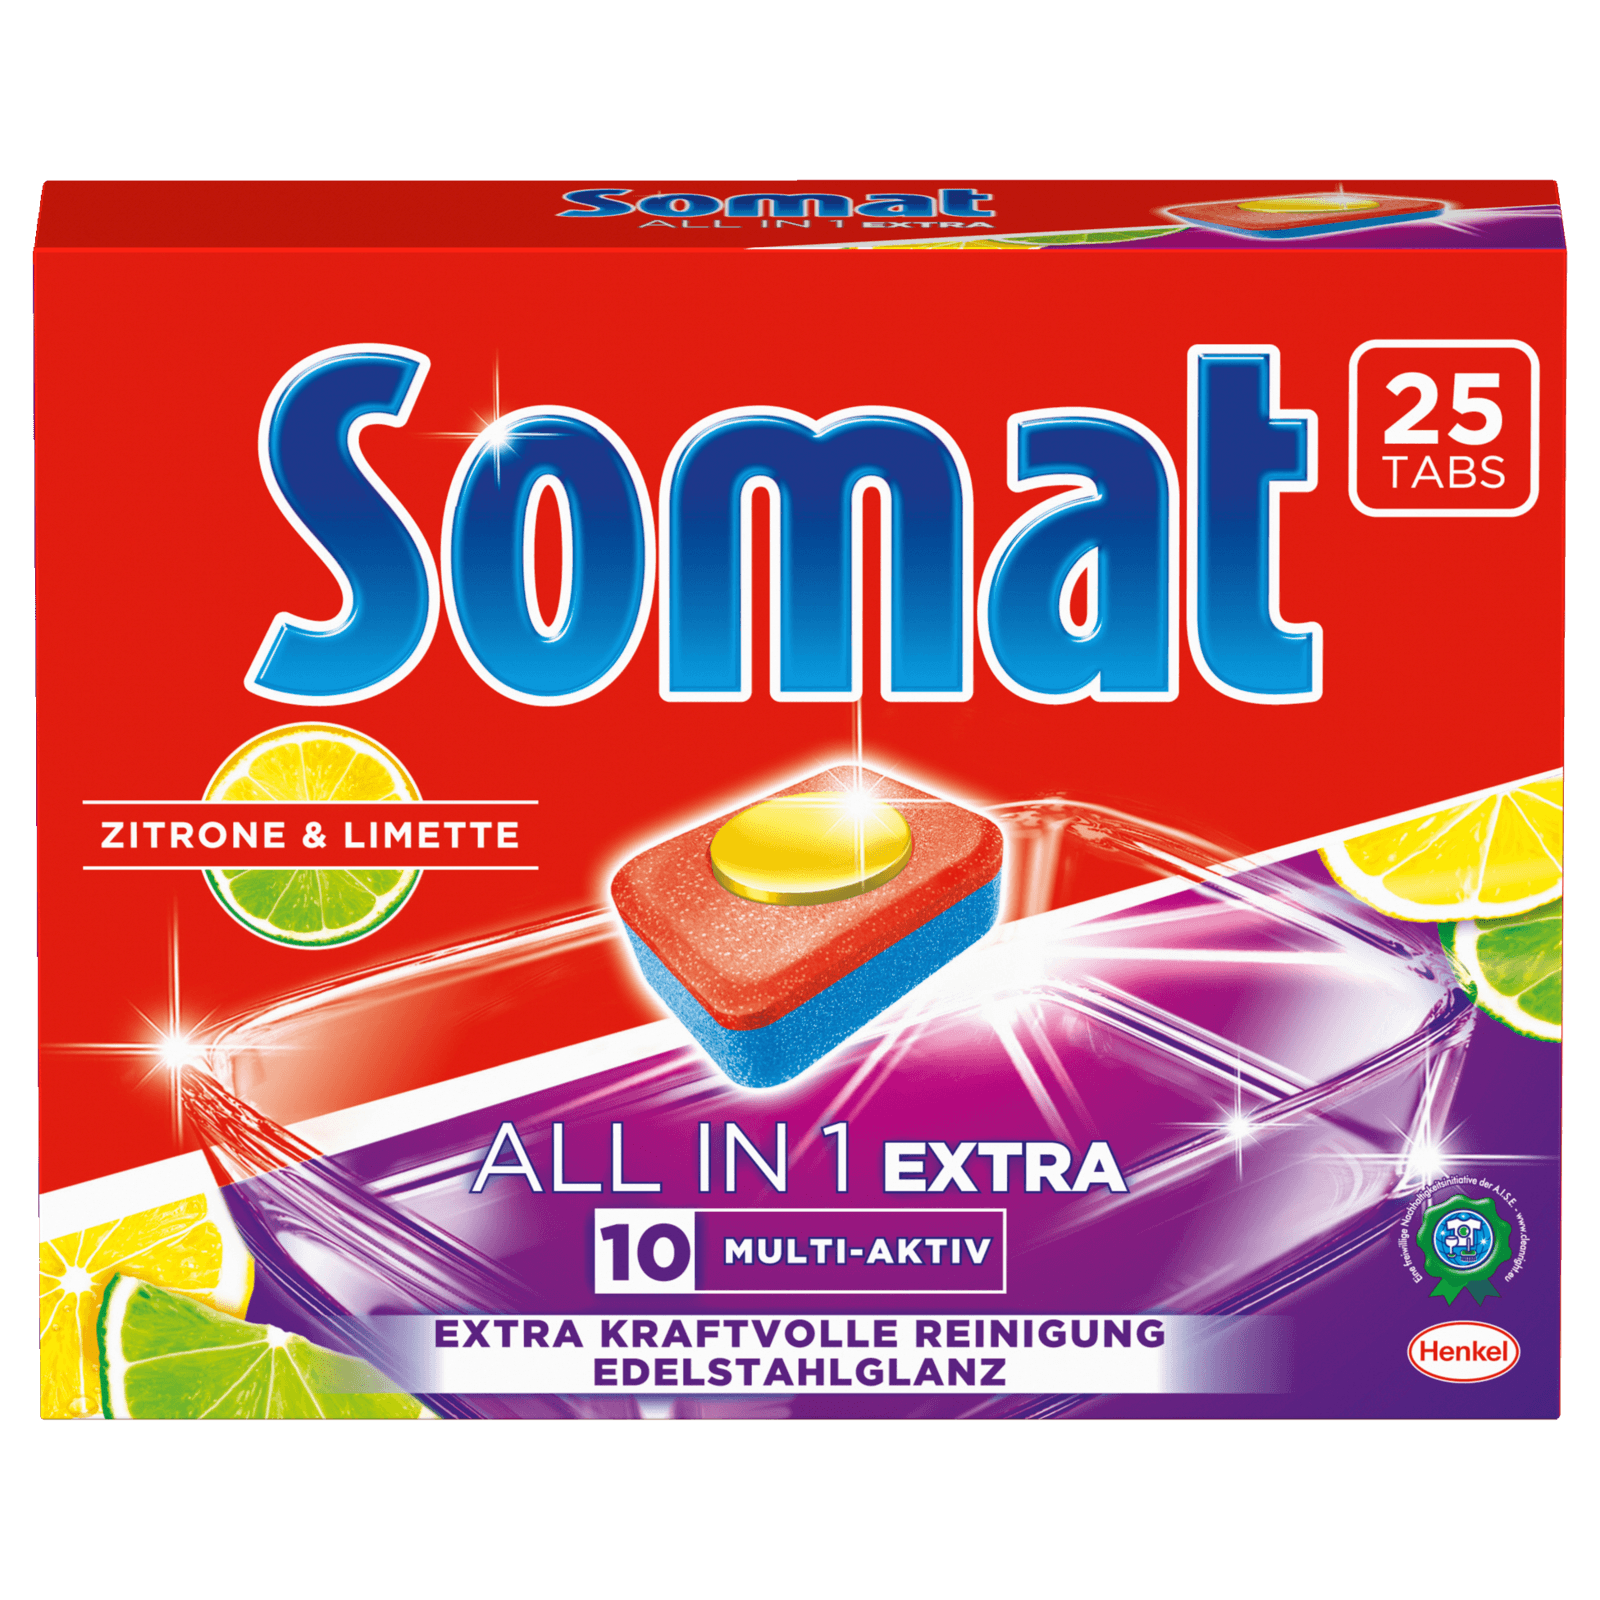 Somat All-in-1 Extra Zitrone & Limette 25 Tabs